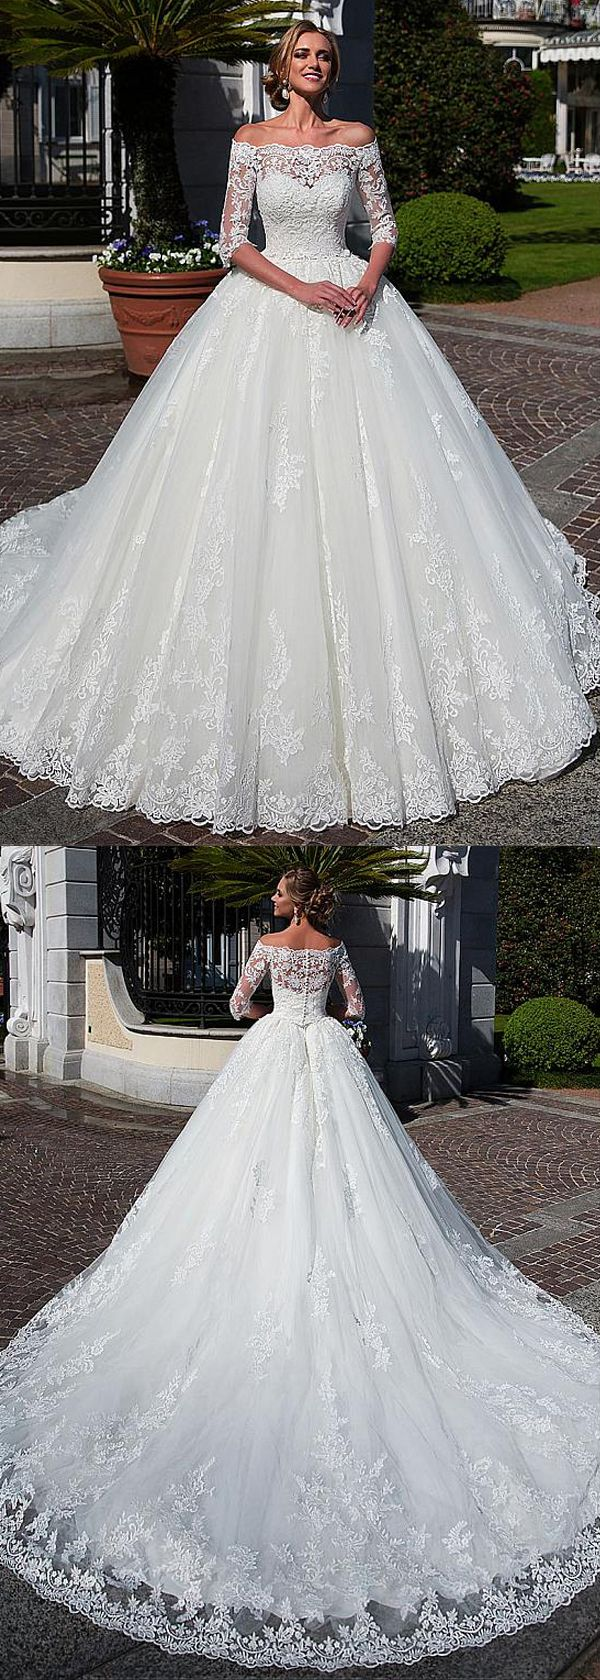 [253.20] Enticing Tulle Off-the-shoulder Neckline Ball Robe Marriage ceremony Gown With Lace Appliques & Beadings & Removable Jacket